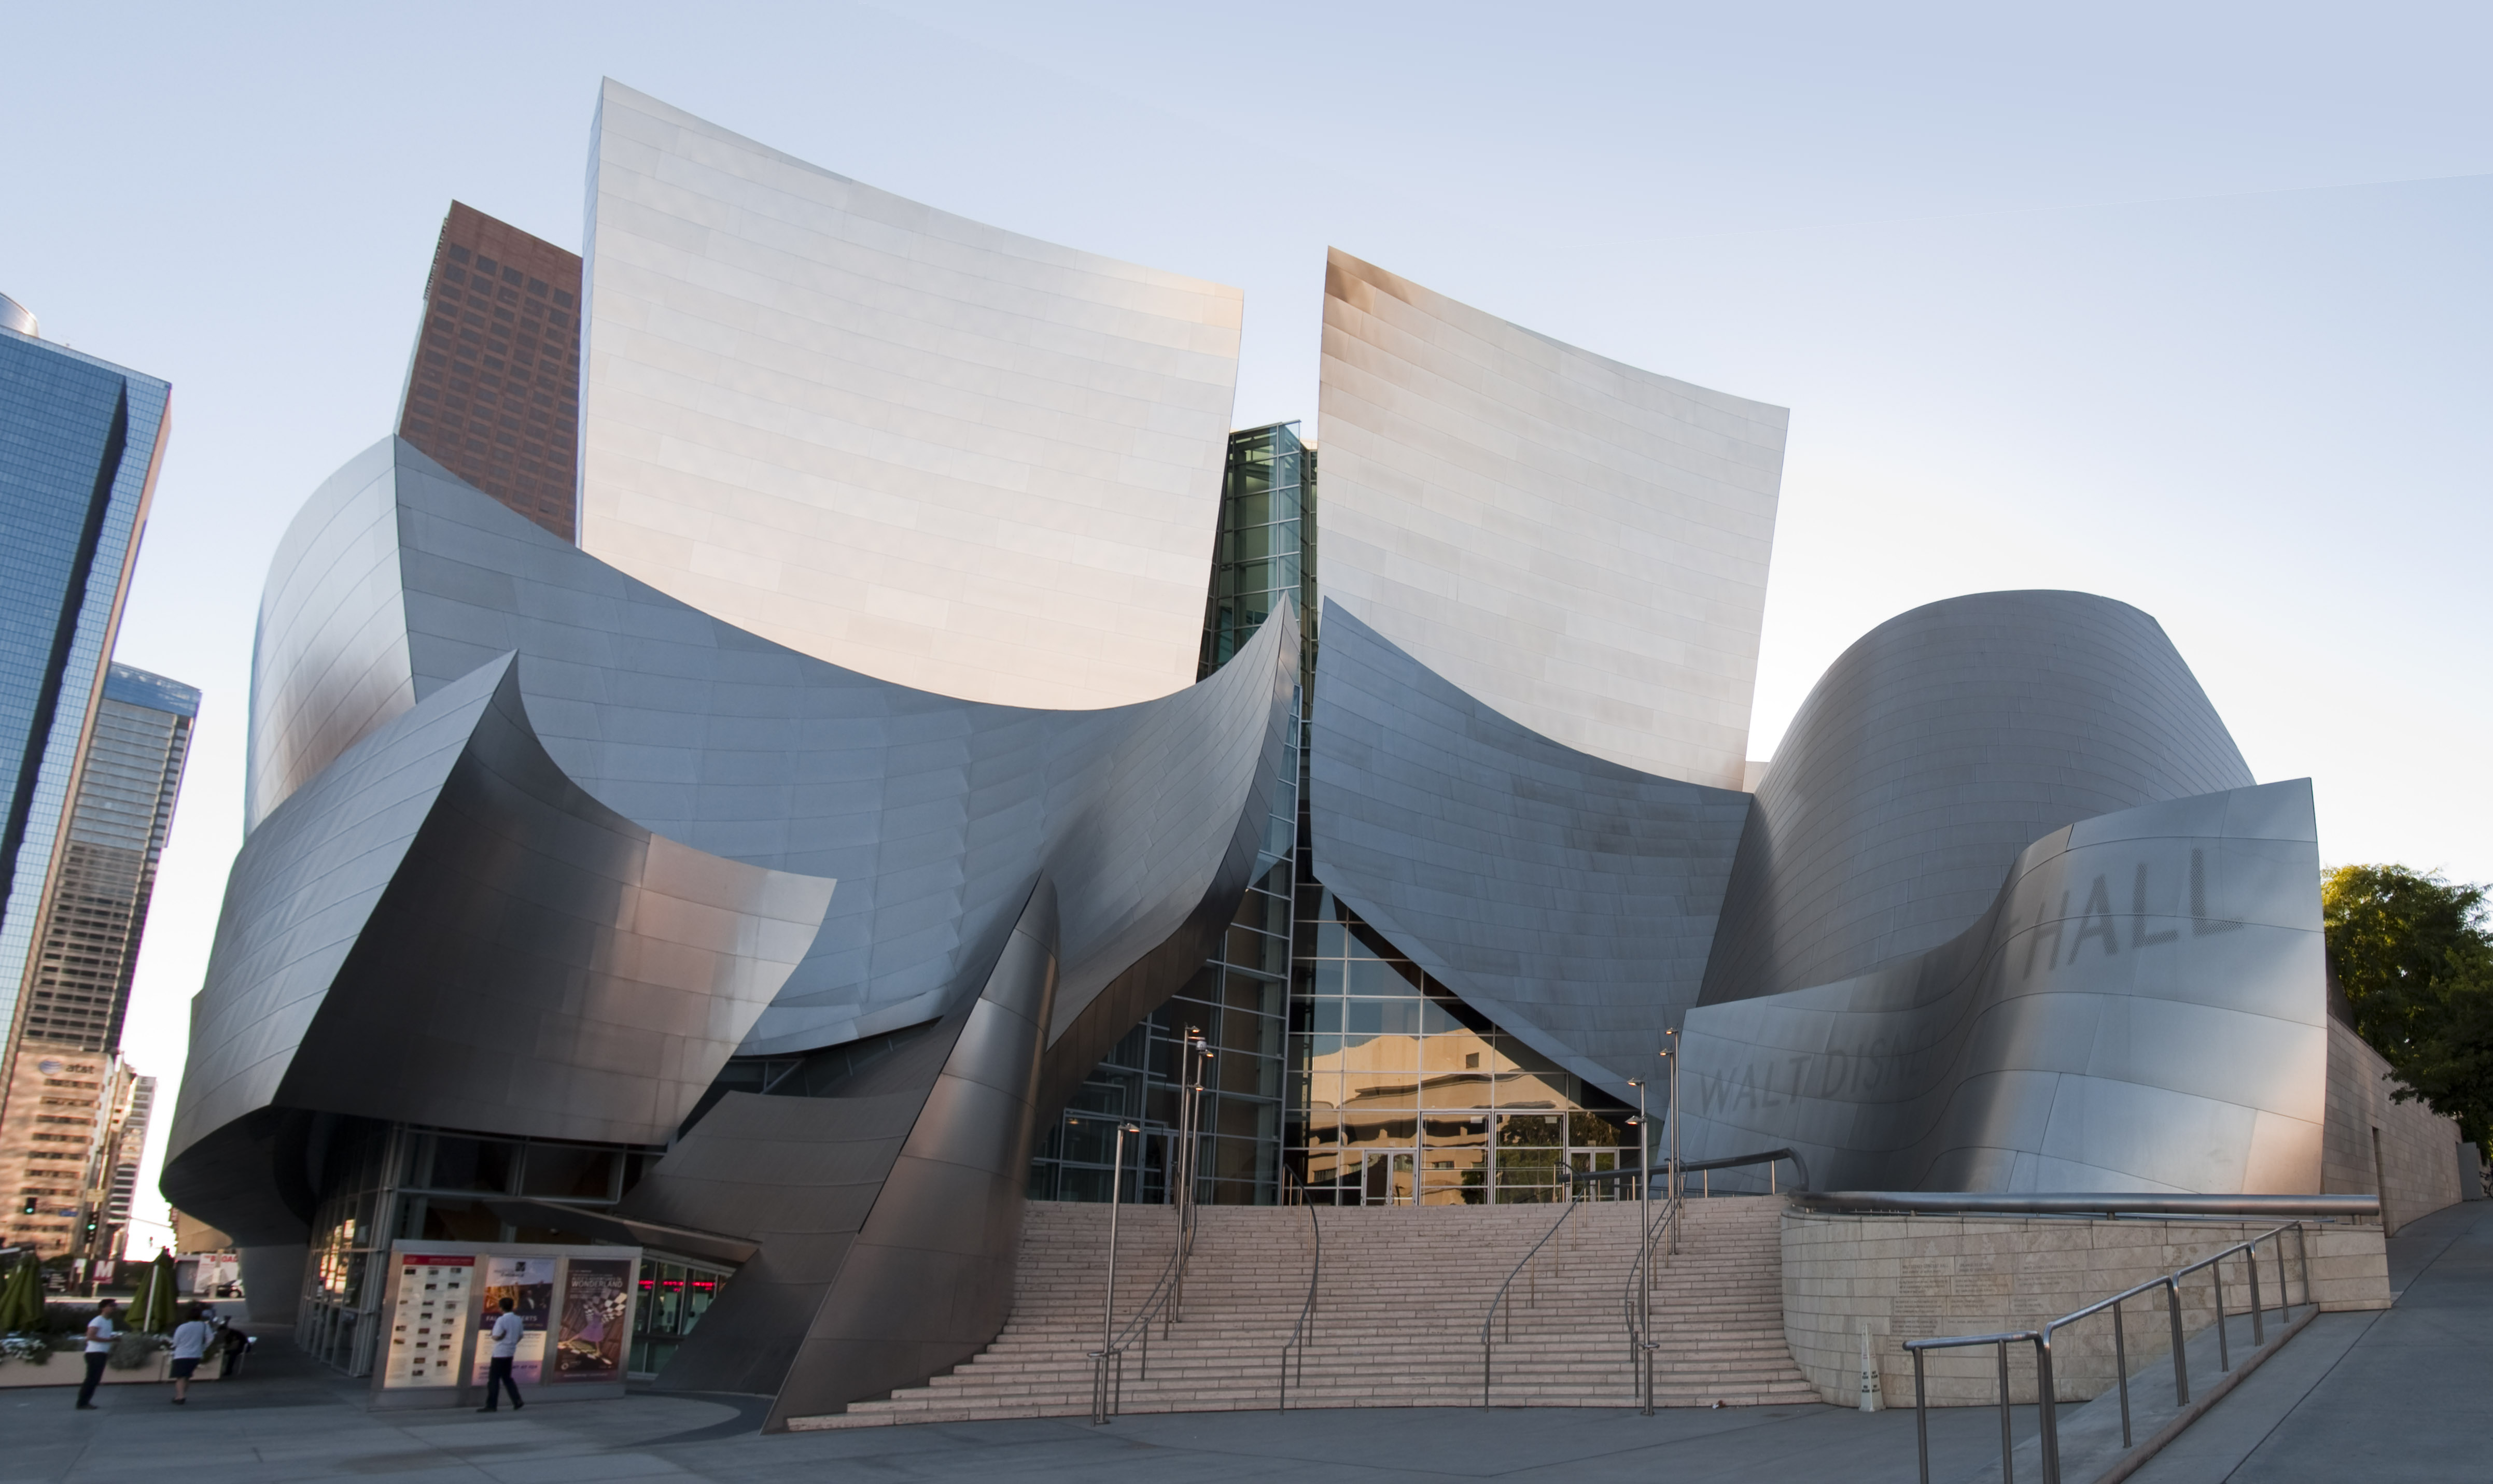 About Walt Disney Concert Hall | LA Phil